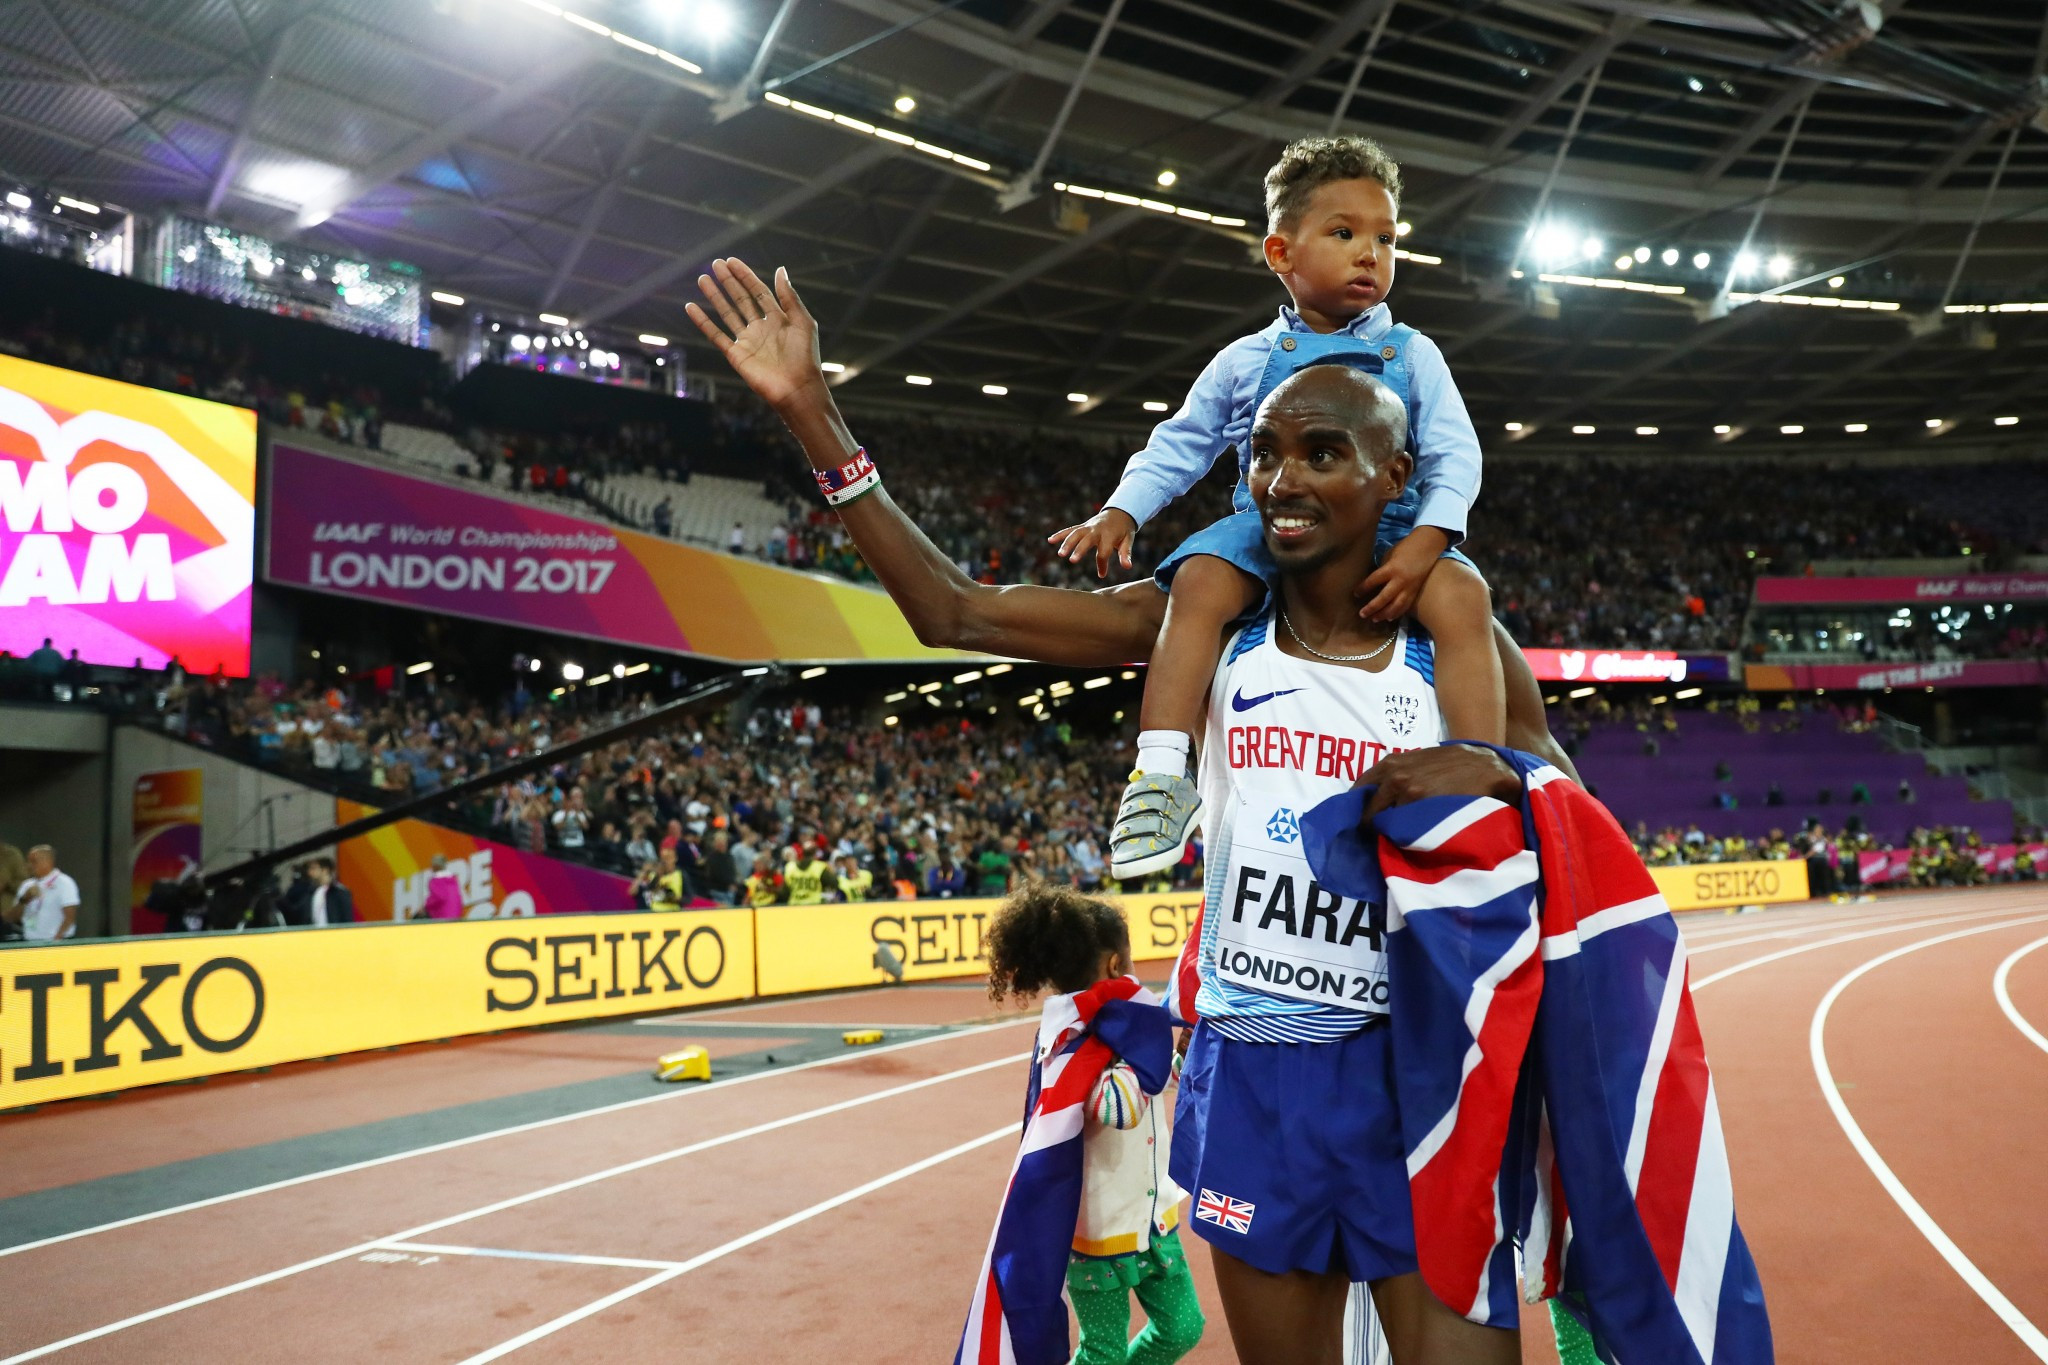 Mo Farah enthrals London crowd once more to cement his legacy